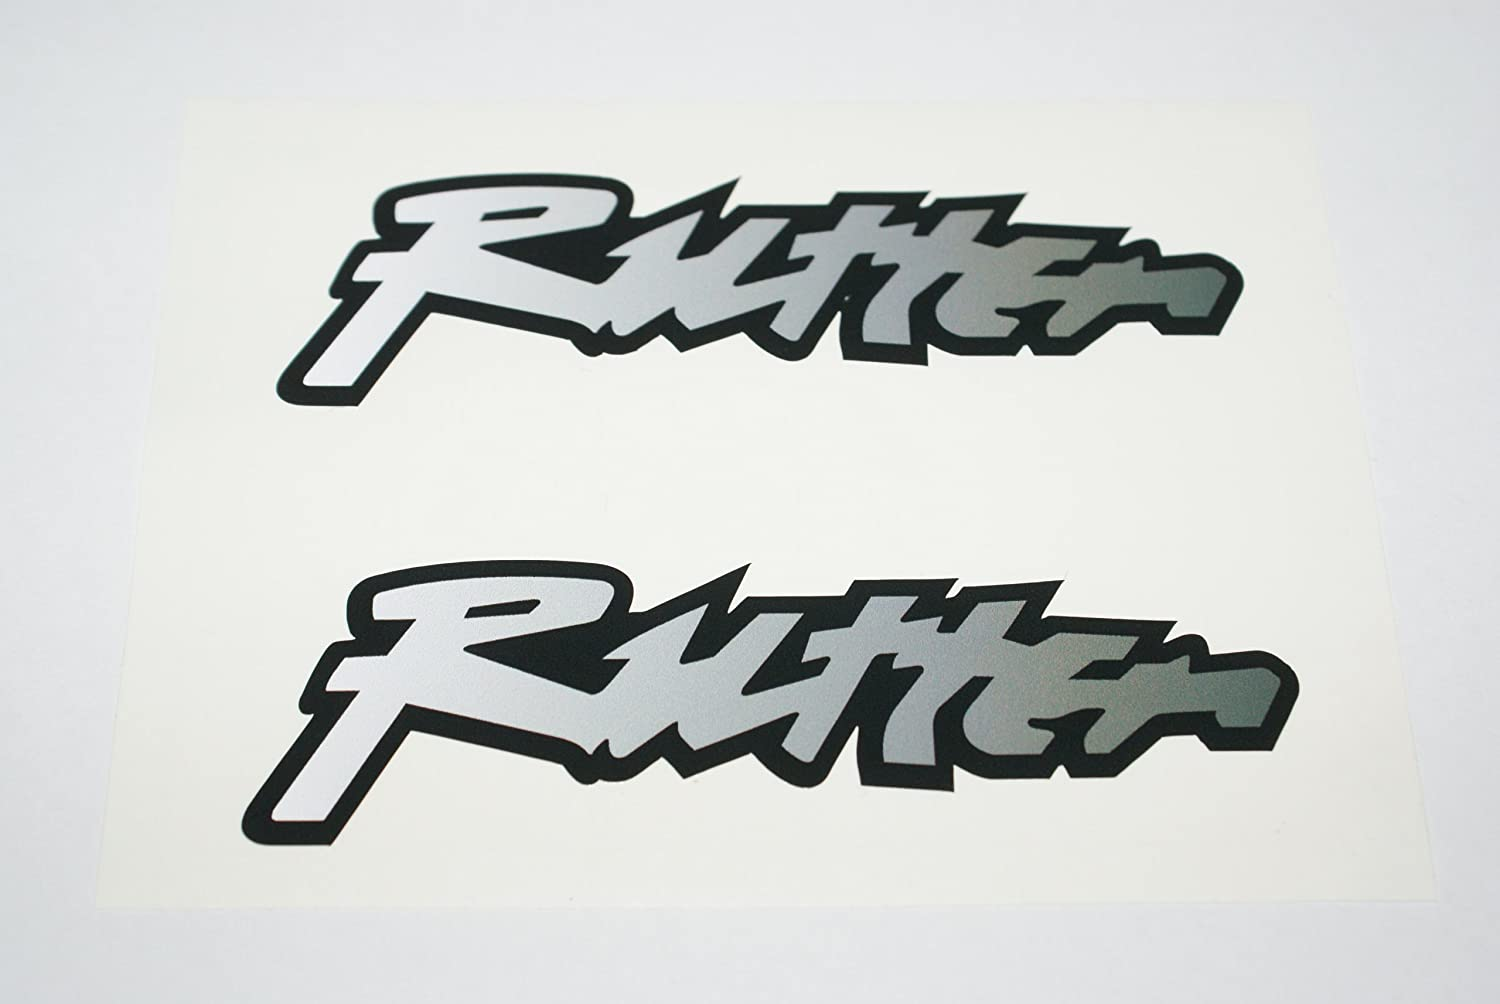 Rapro Graphics Michael Rutter Screen Stickers